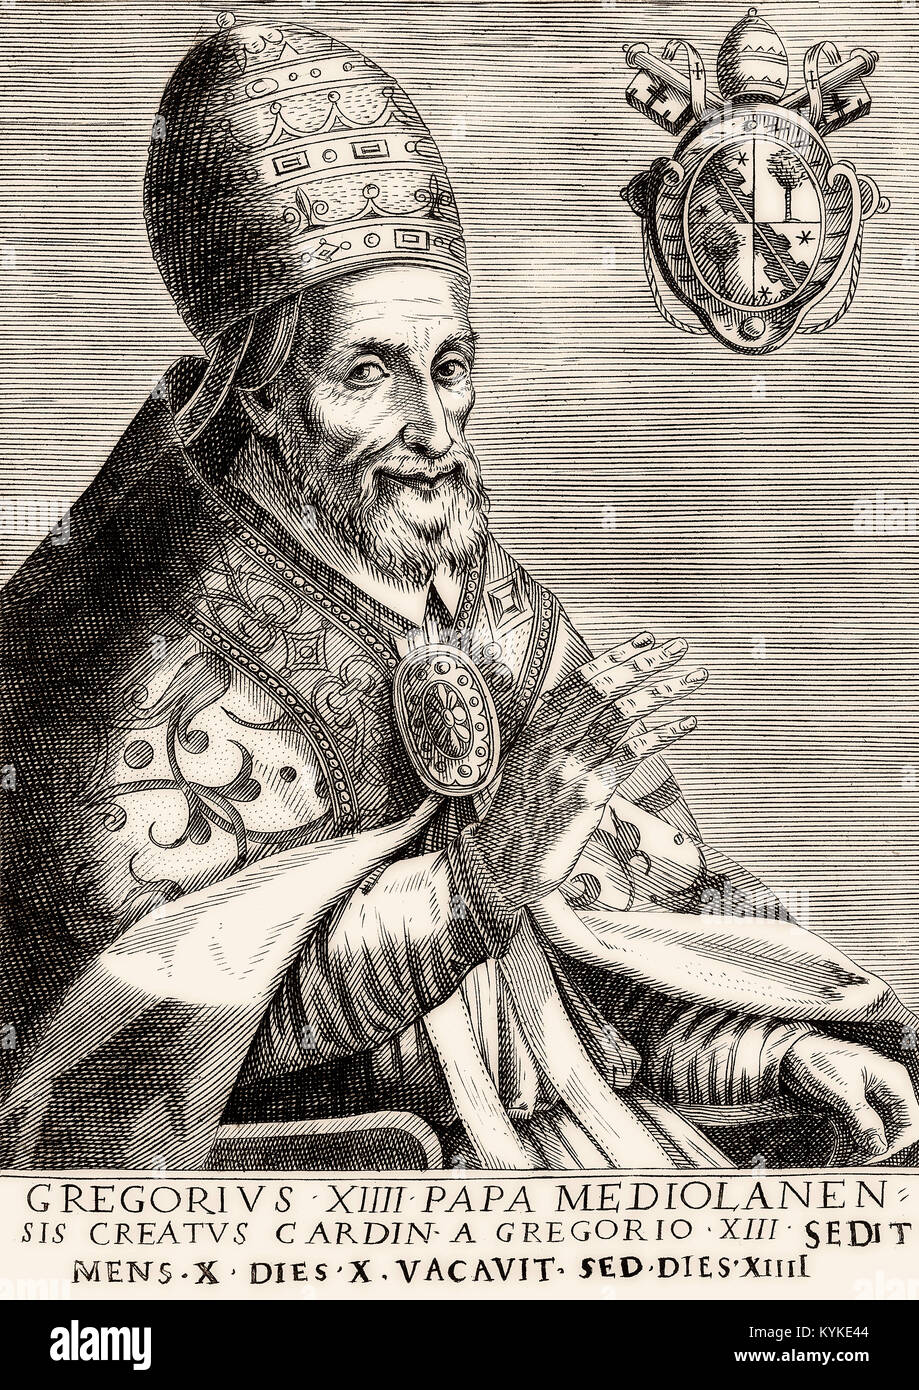 Pope Gregory XIV, 1535 –1591, Pope from 5 December 1590 to his death